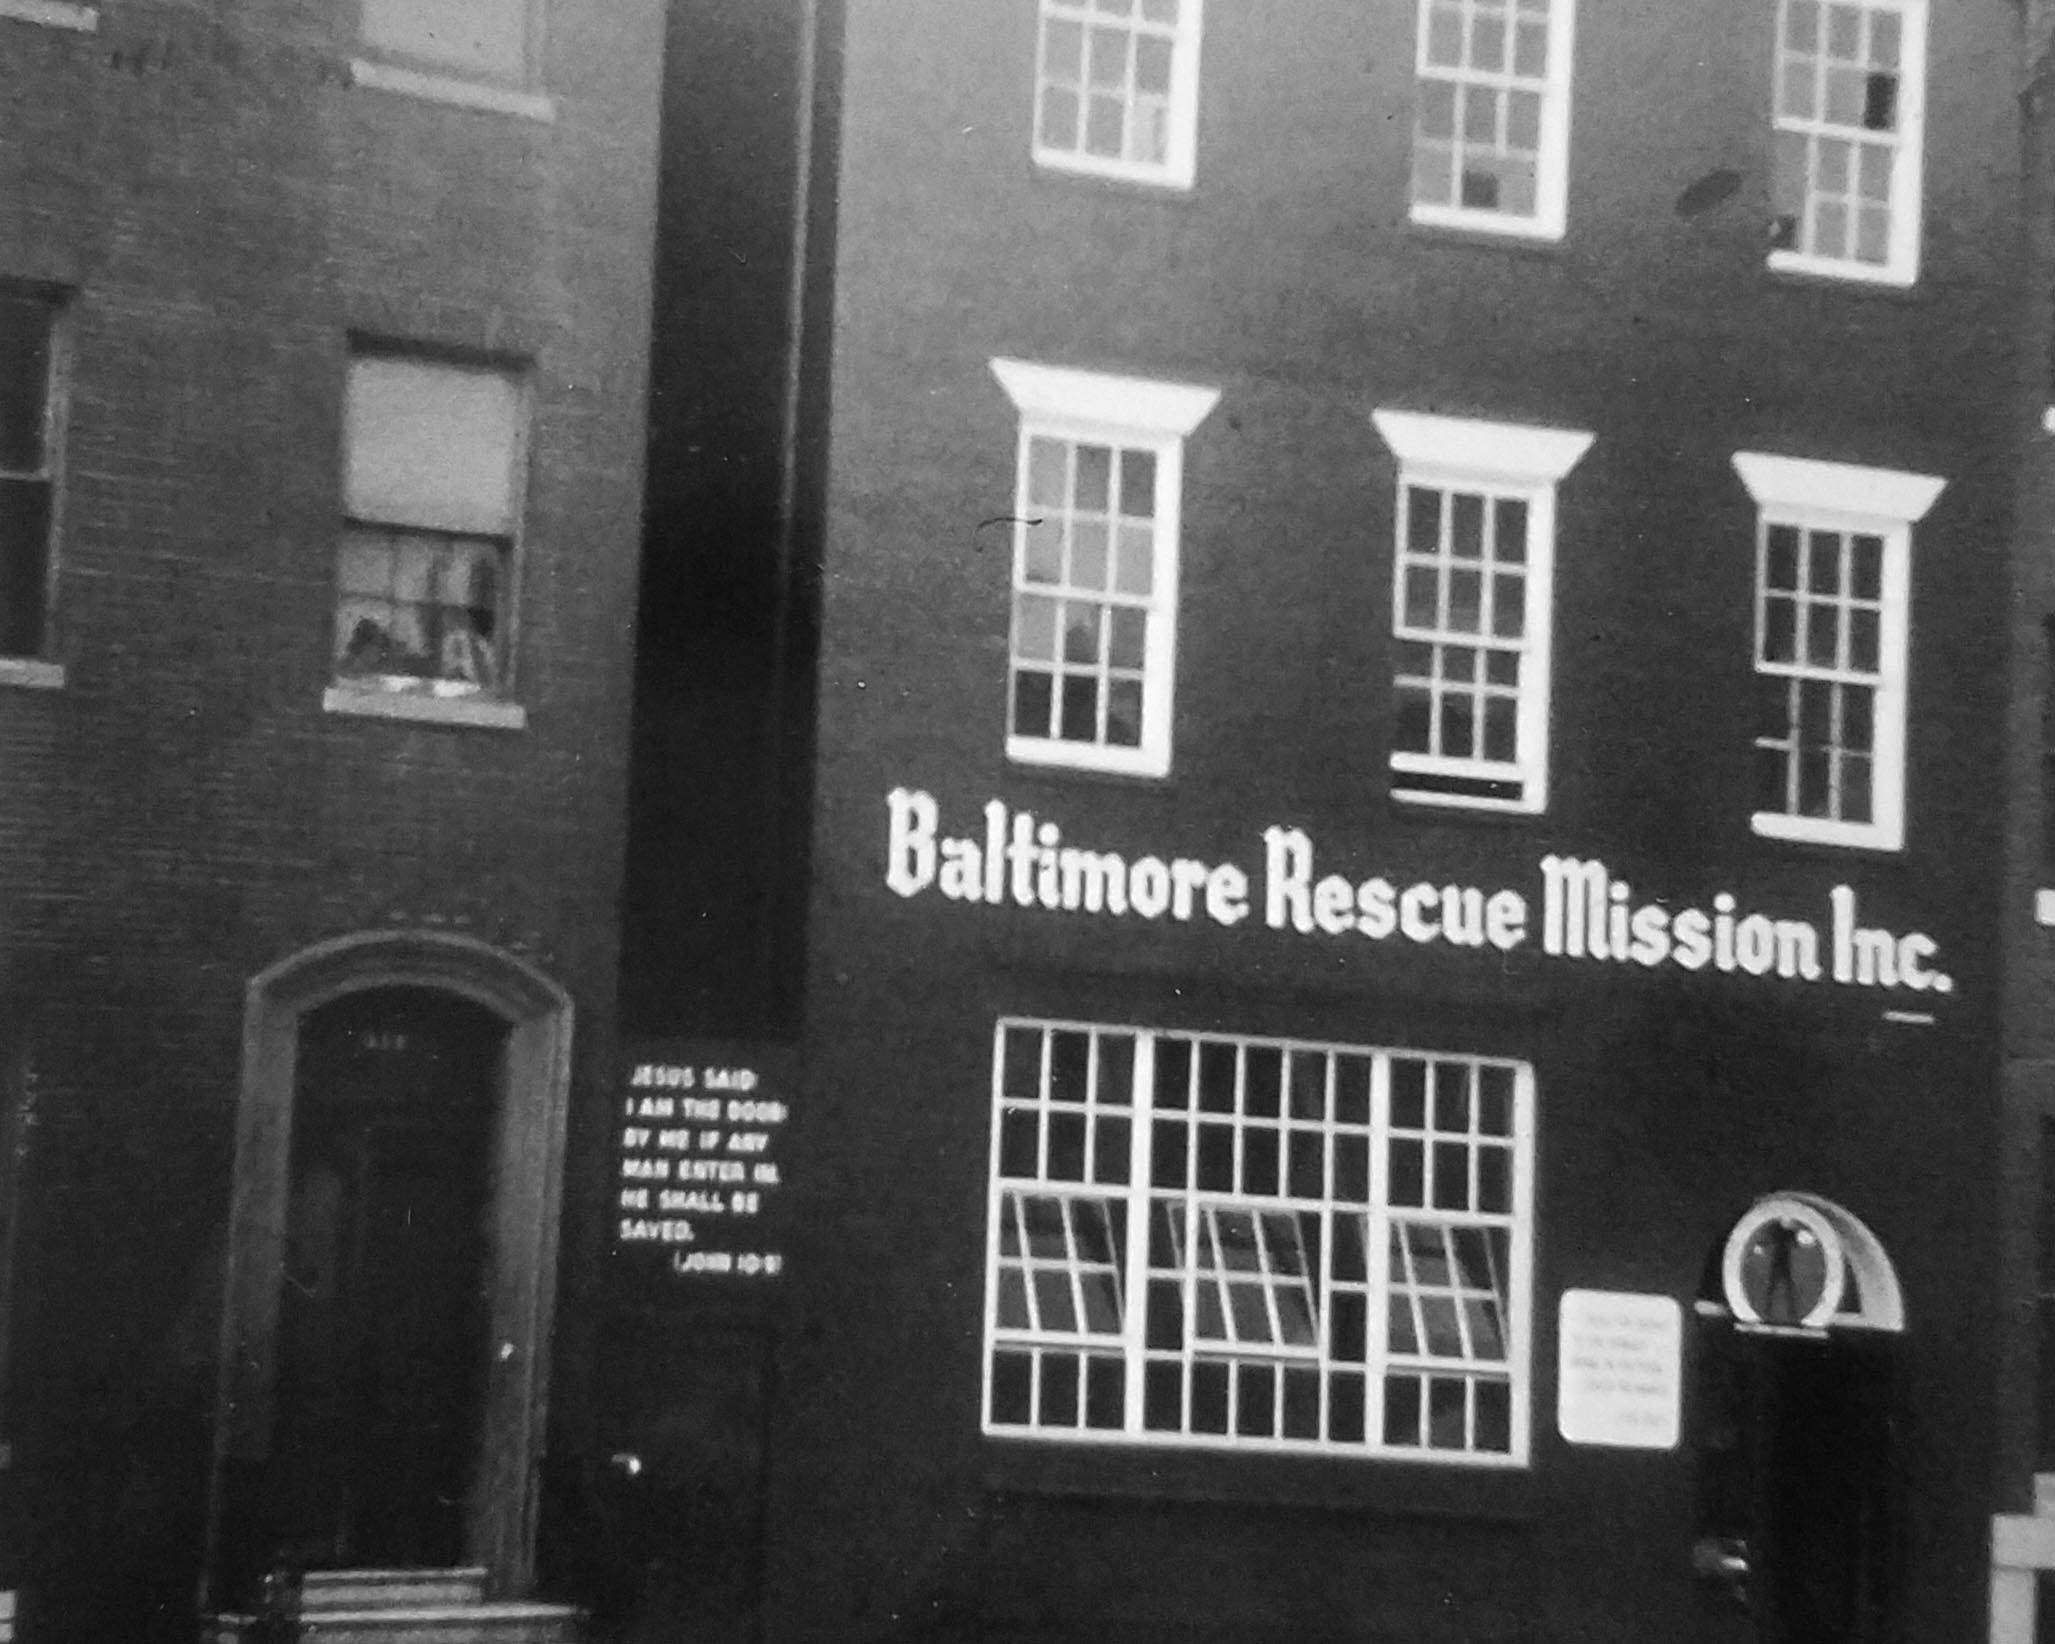 The Baltimore Rescue Mission building, circa 1963